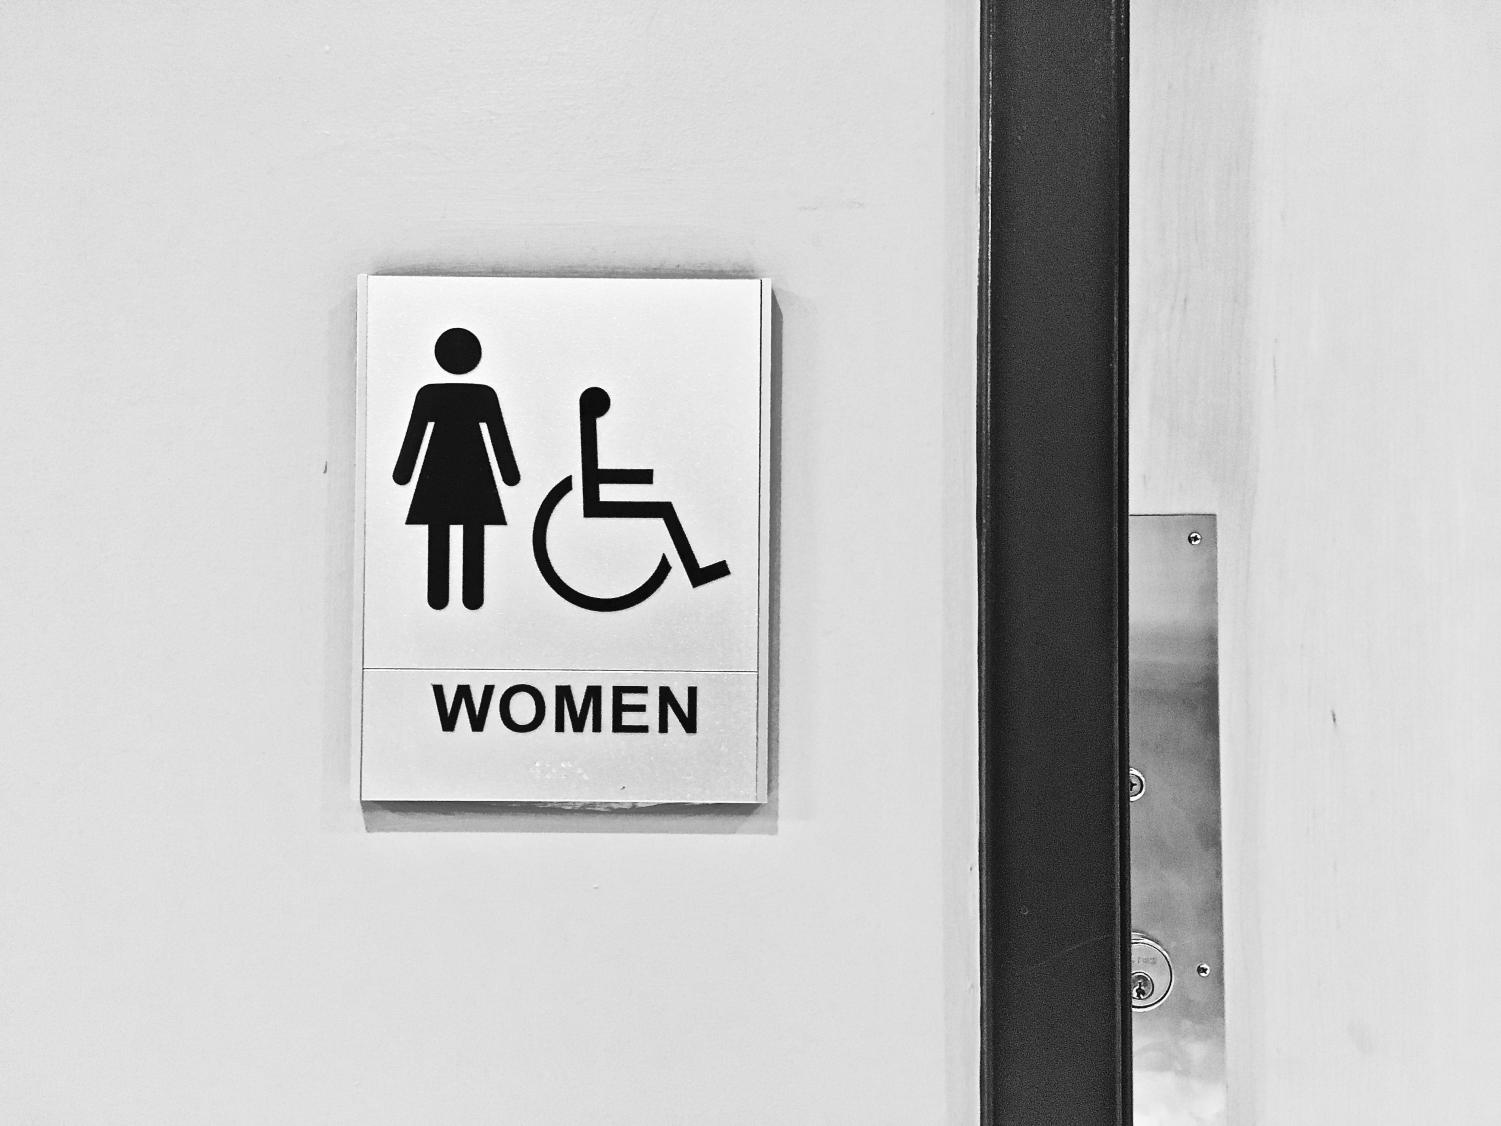 Schools monitor bathroom use to crack down on Juuling on campus.